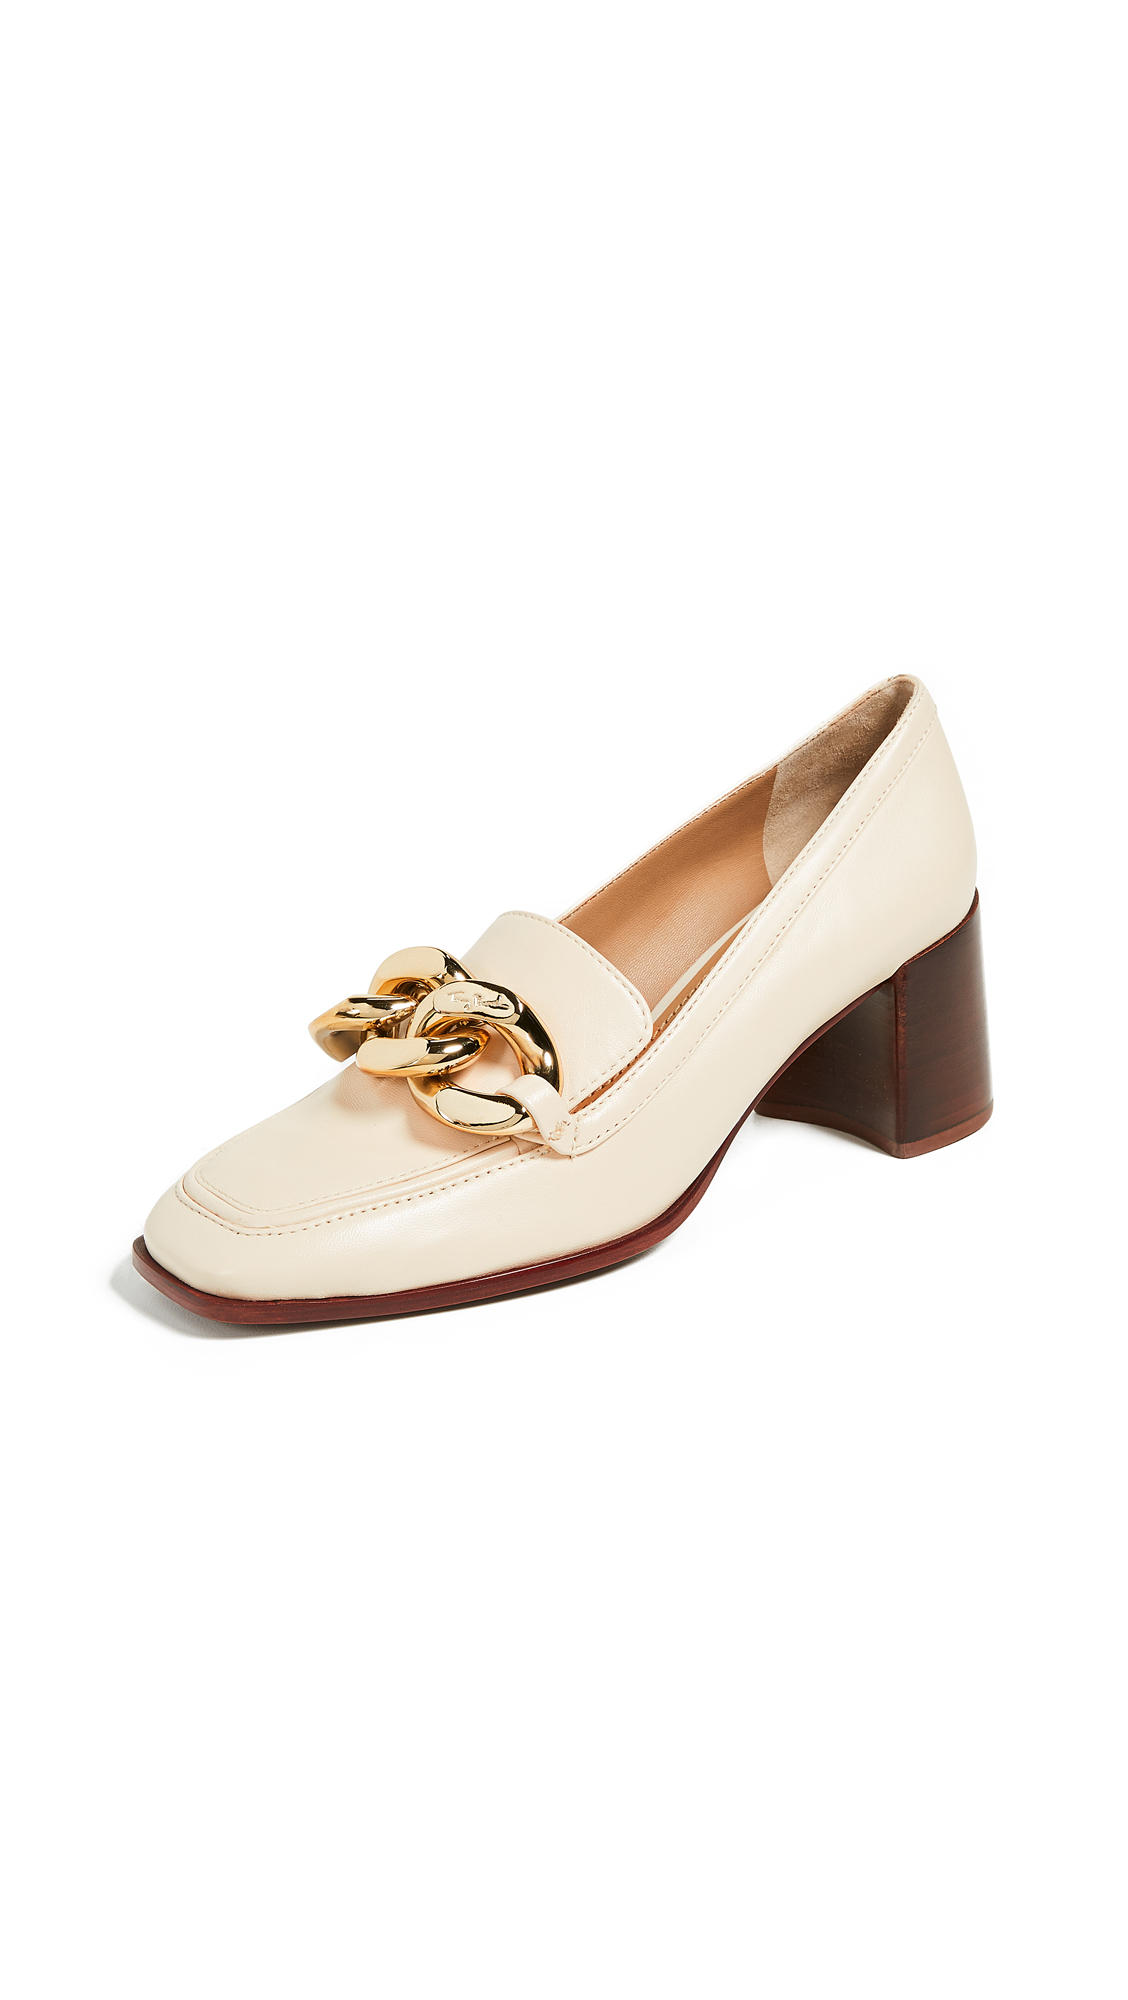 Tory Burch Adrien 65mm Loafers - Dulce De Leche